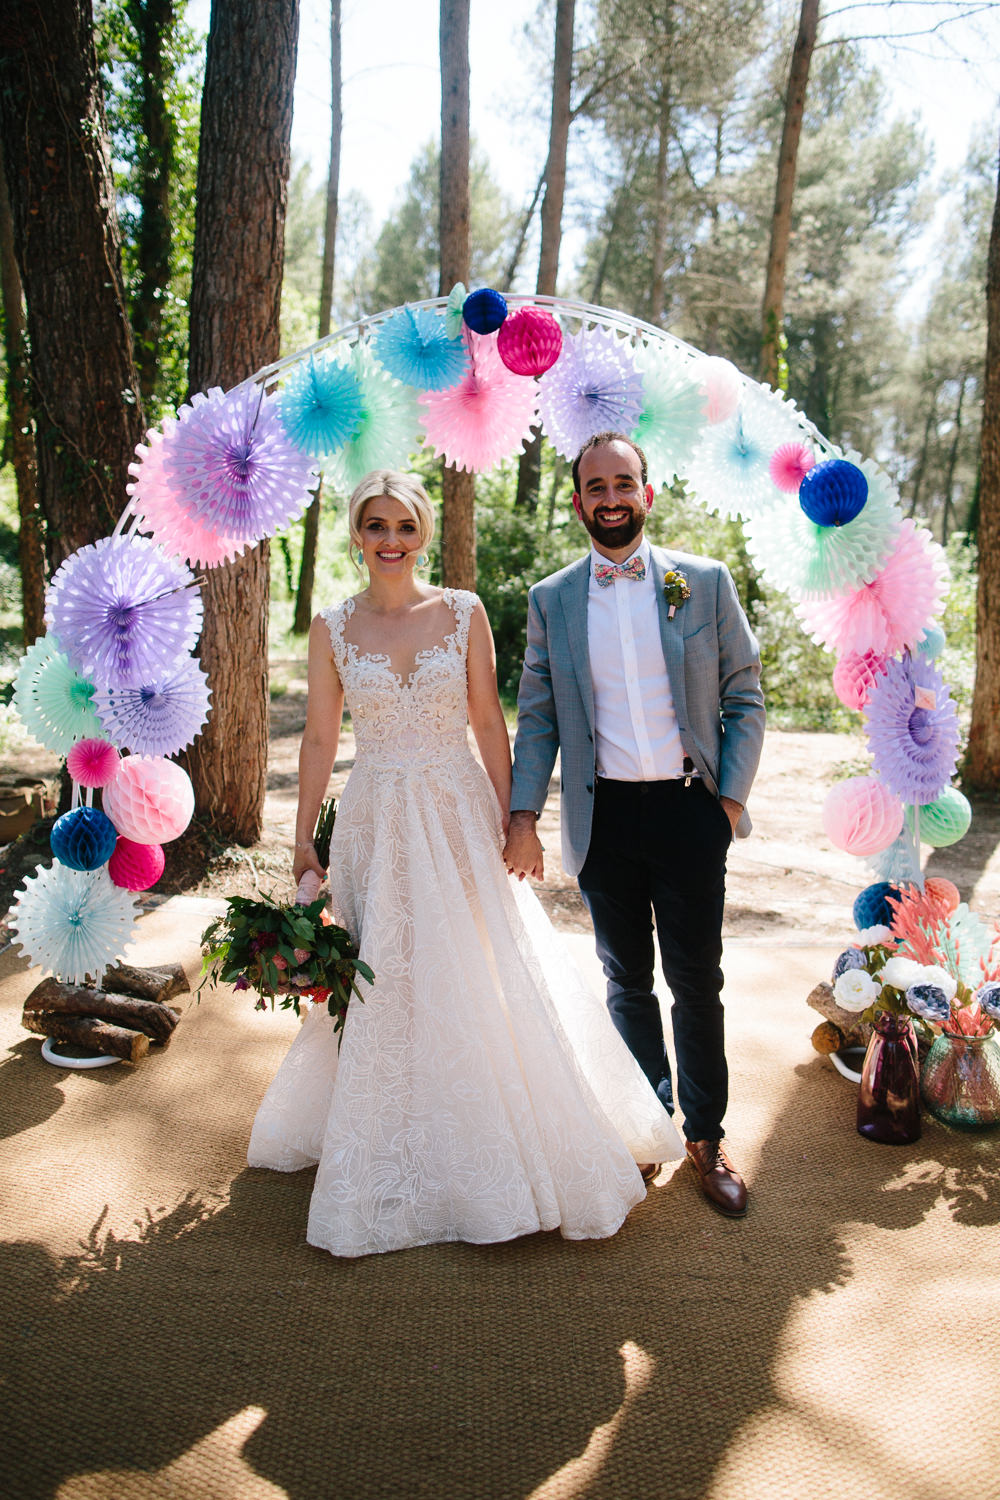 Bride Bridal Lace Strappy Sleeveless Embellished Dress Gown Mismatched Bow Tie Groom Pin Wheel Paper Lantern Arch Forest Spain Destination Wedding Dan Hough Photography